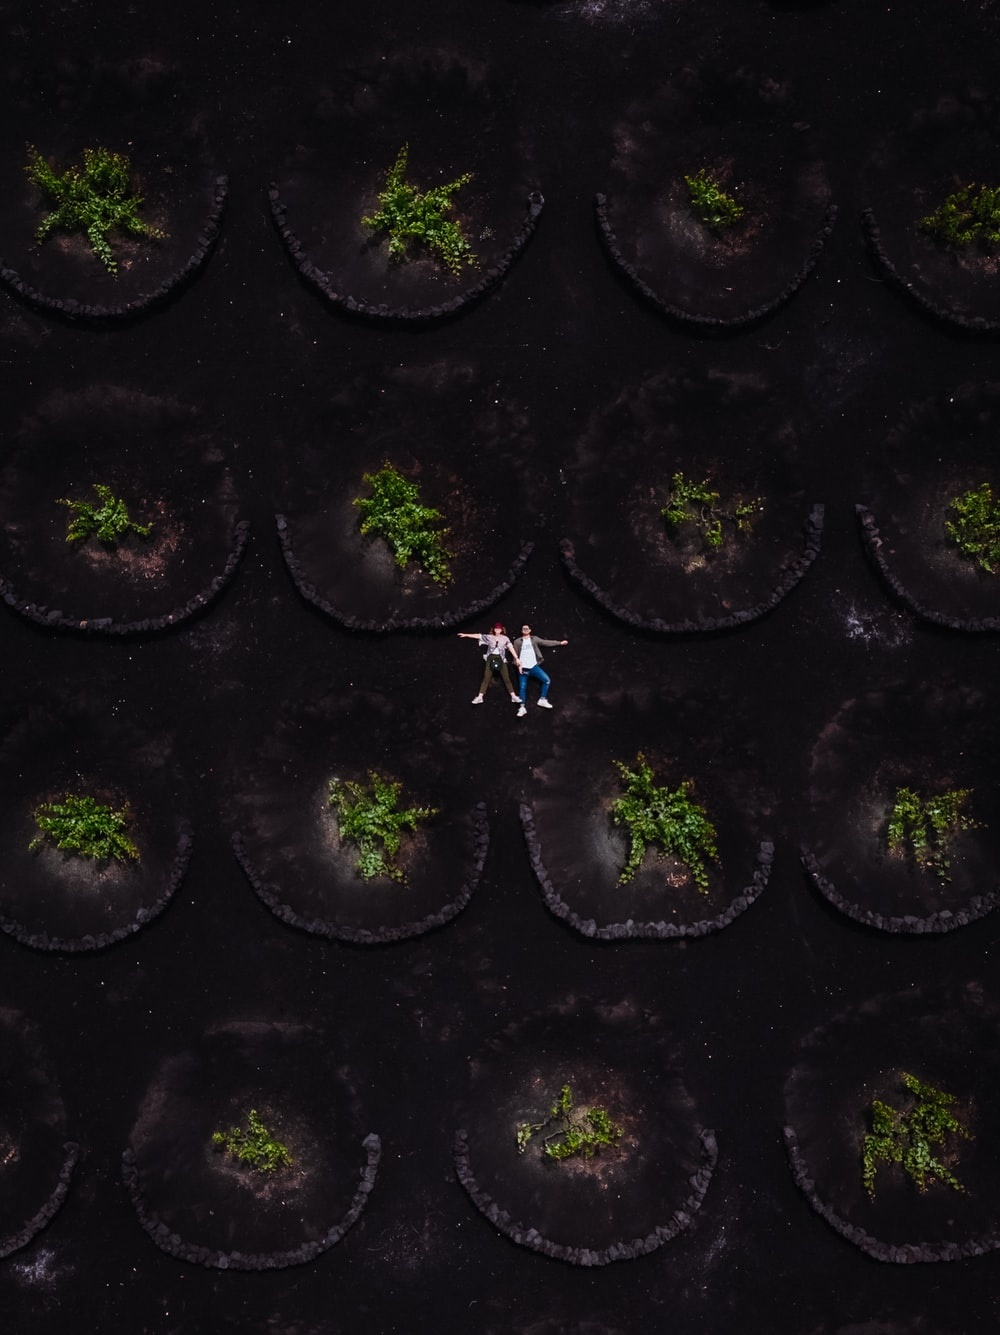 aerial photography of two men surrounded by trees